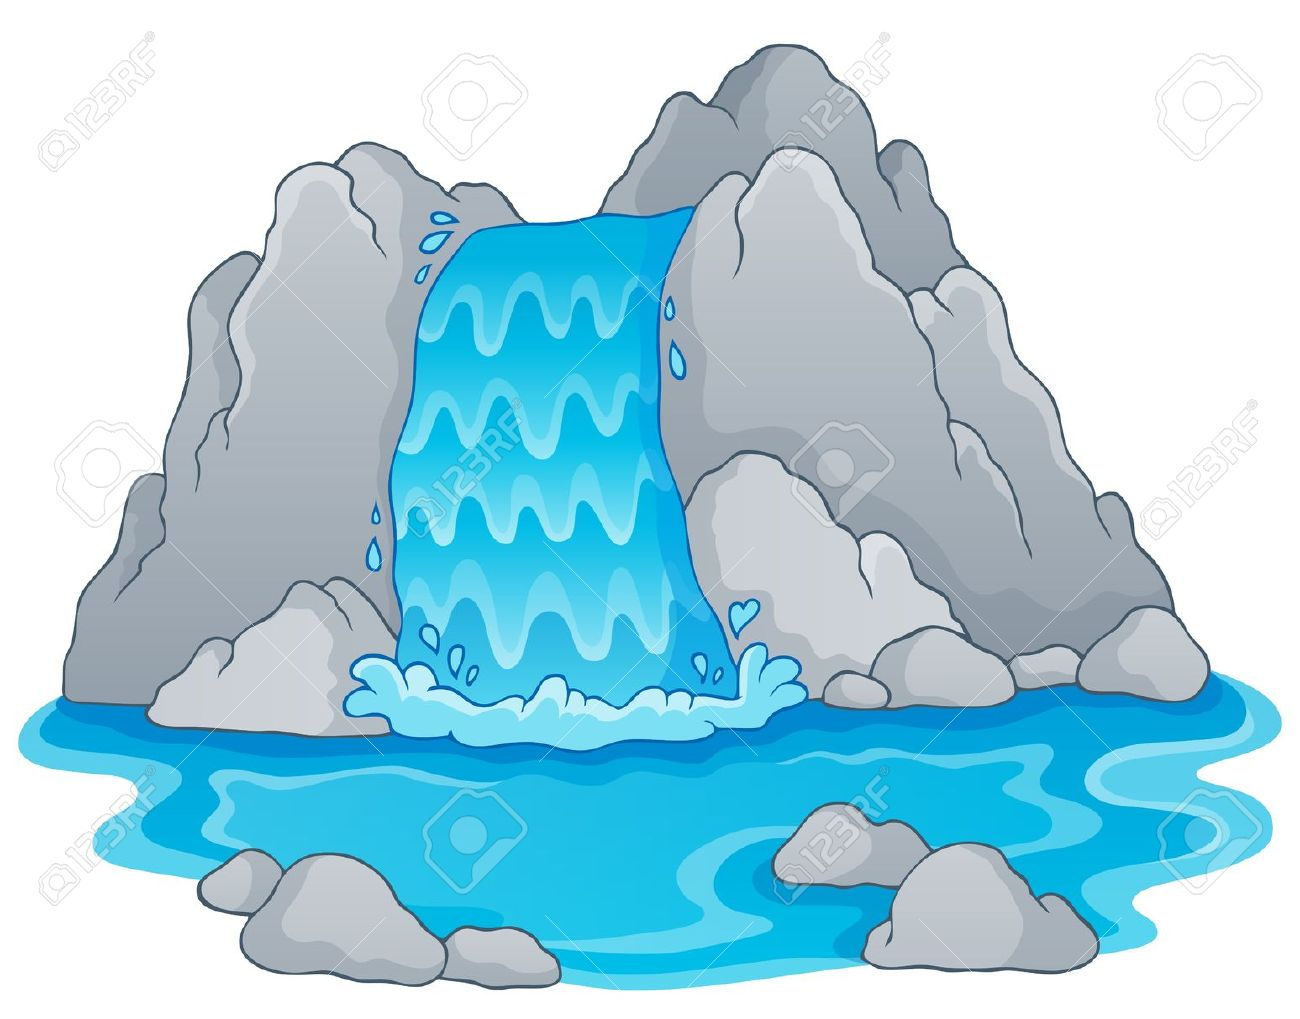 Free live waterfall clipart.